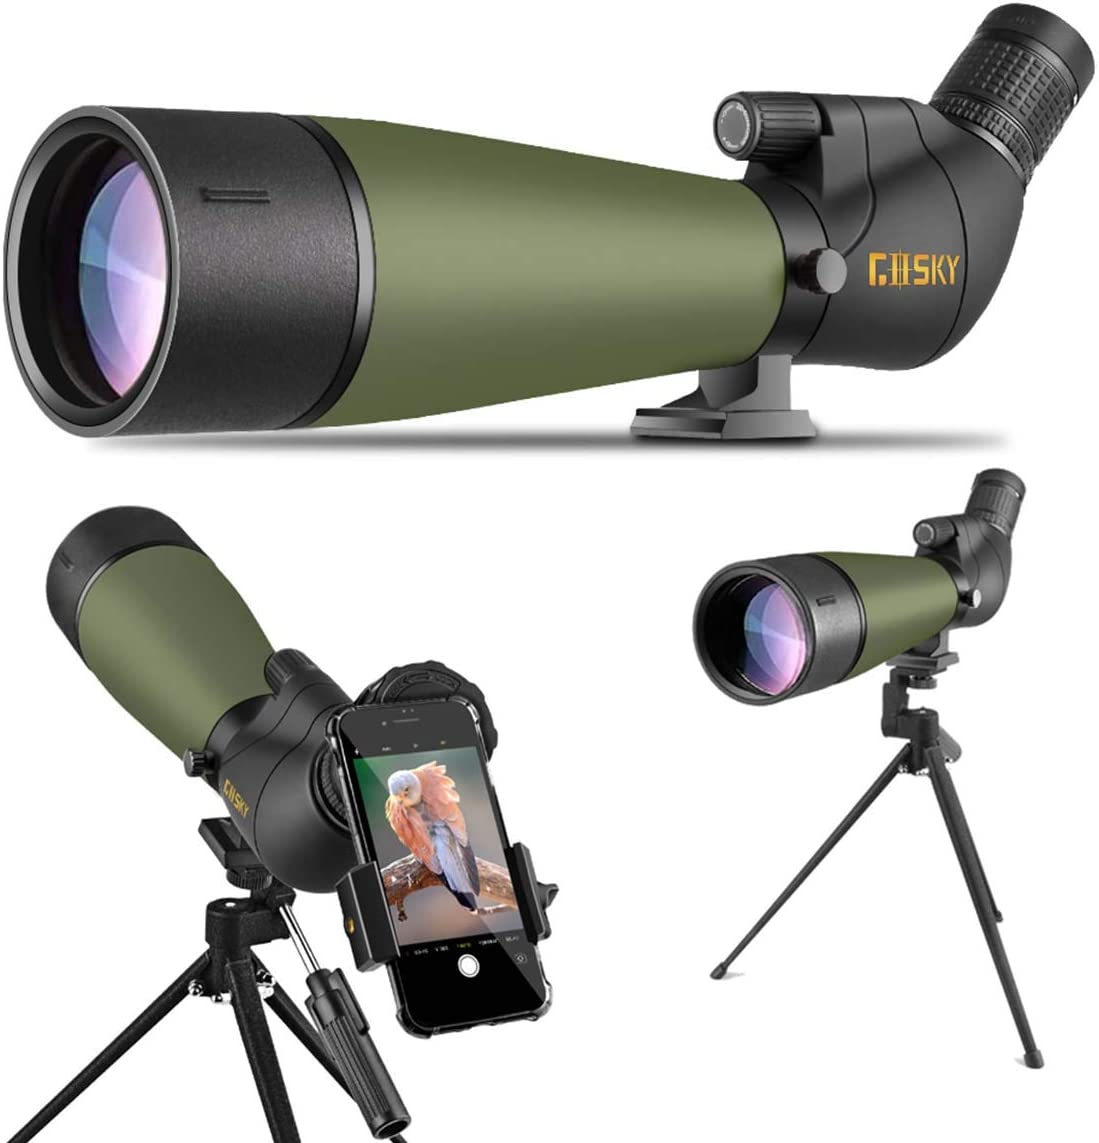 Top 9 Best Spotting Scopes For Wildlife Viewing [Buying Guide - 2021] 1